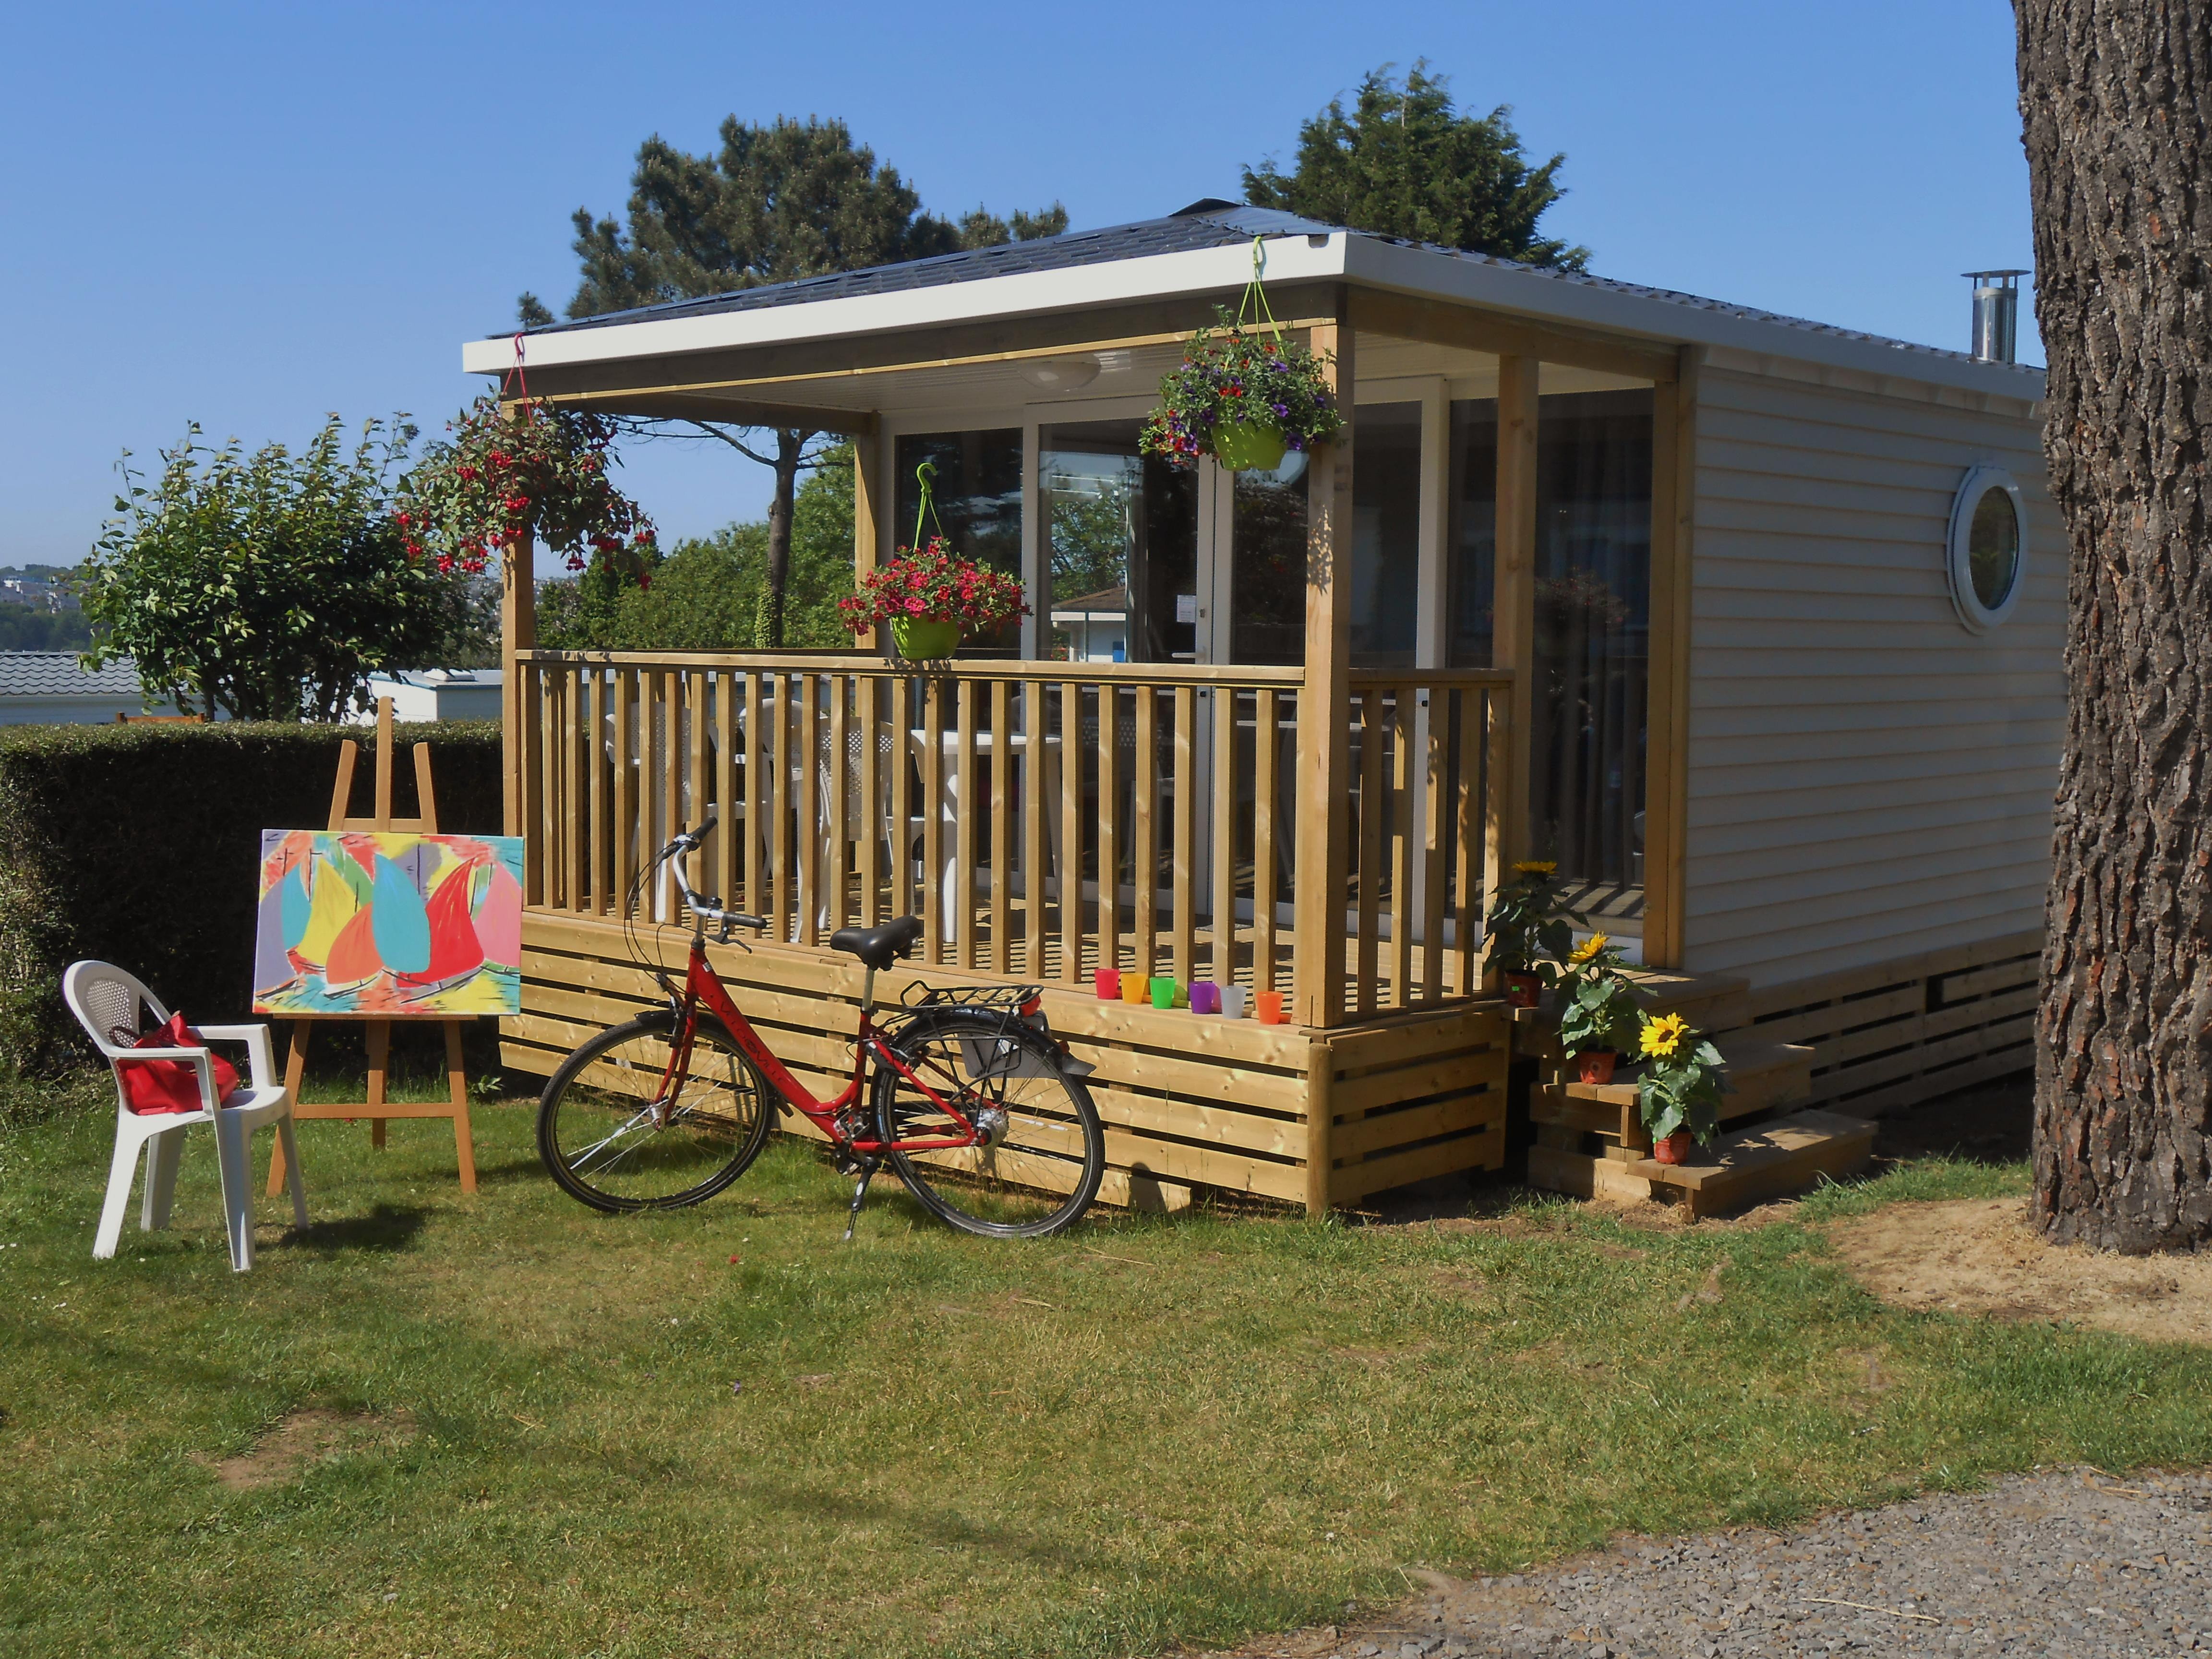 Locatifs - Mobile Home Panorama 25 M² Avec Terrasse Couverte - Camping Le Panoramic